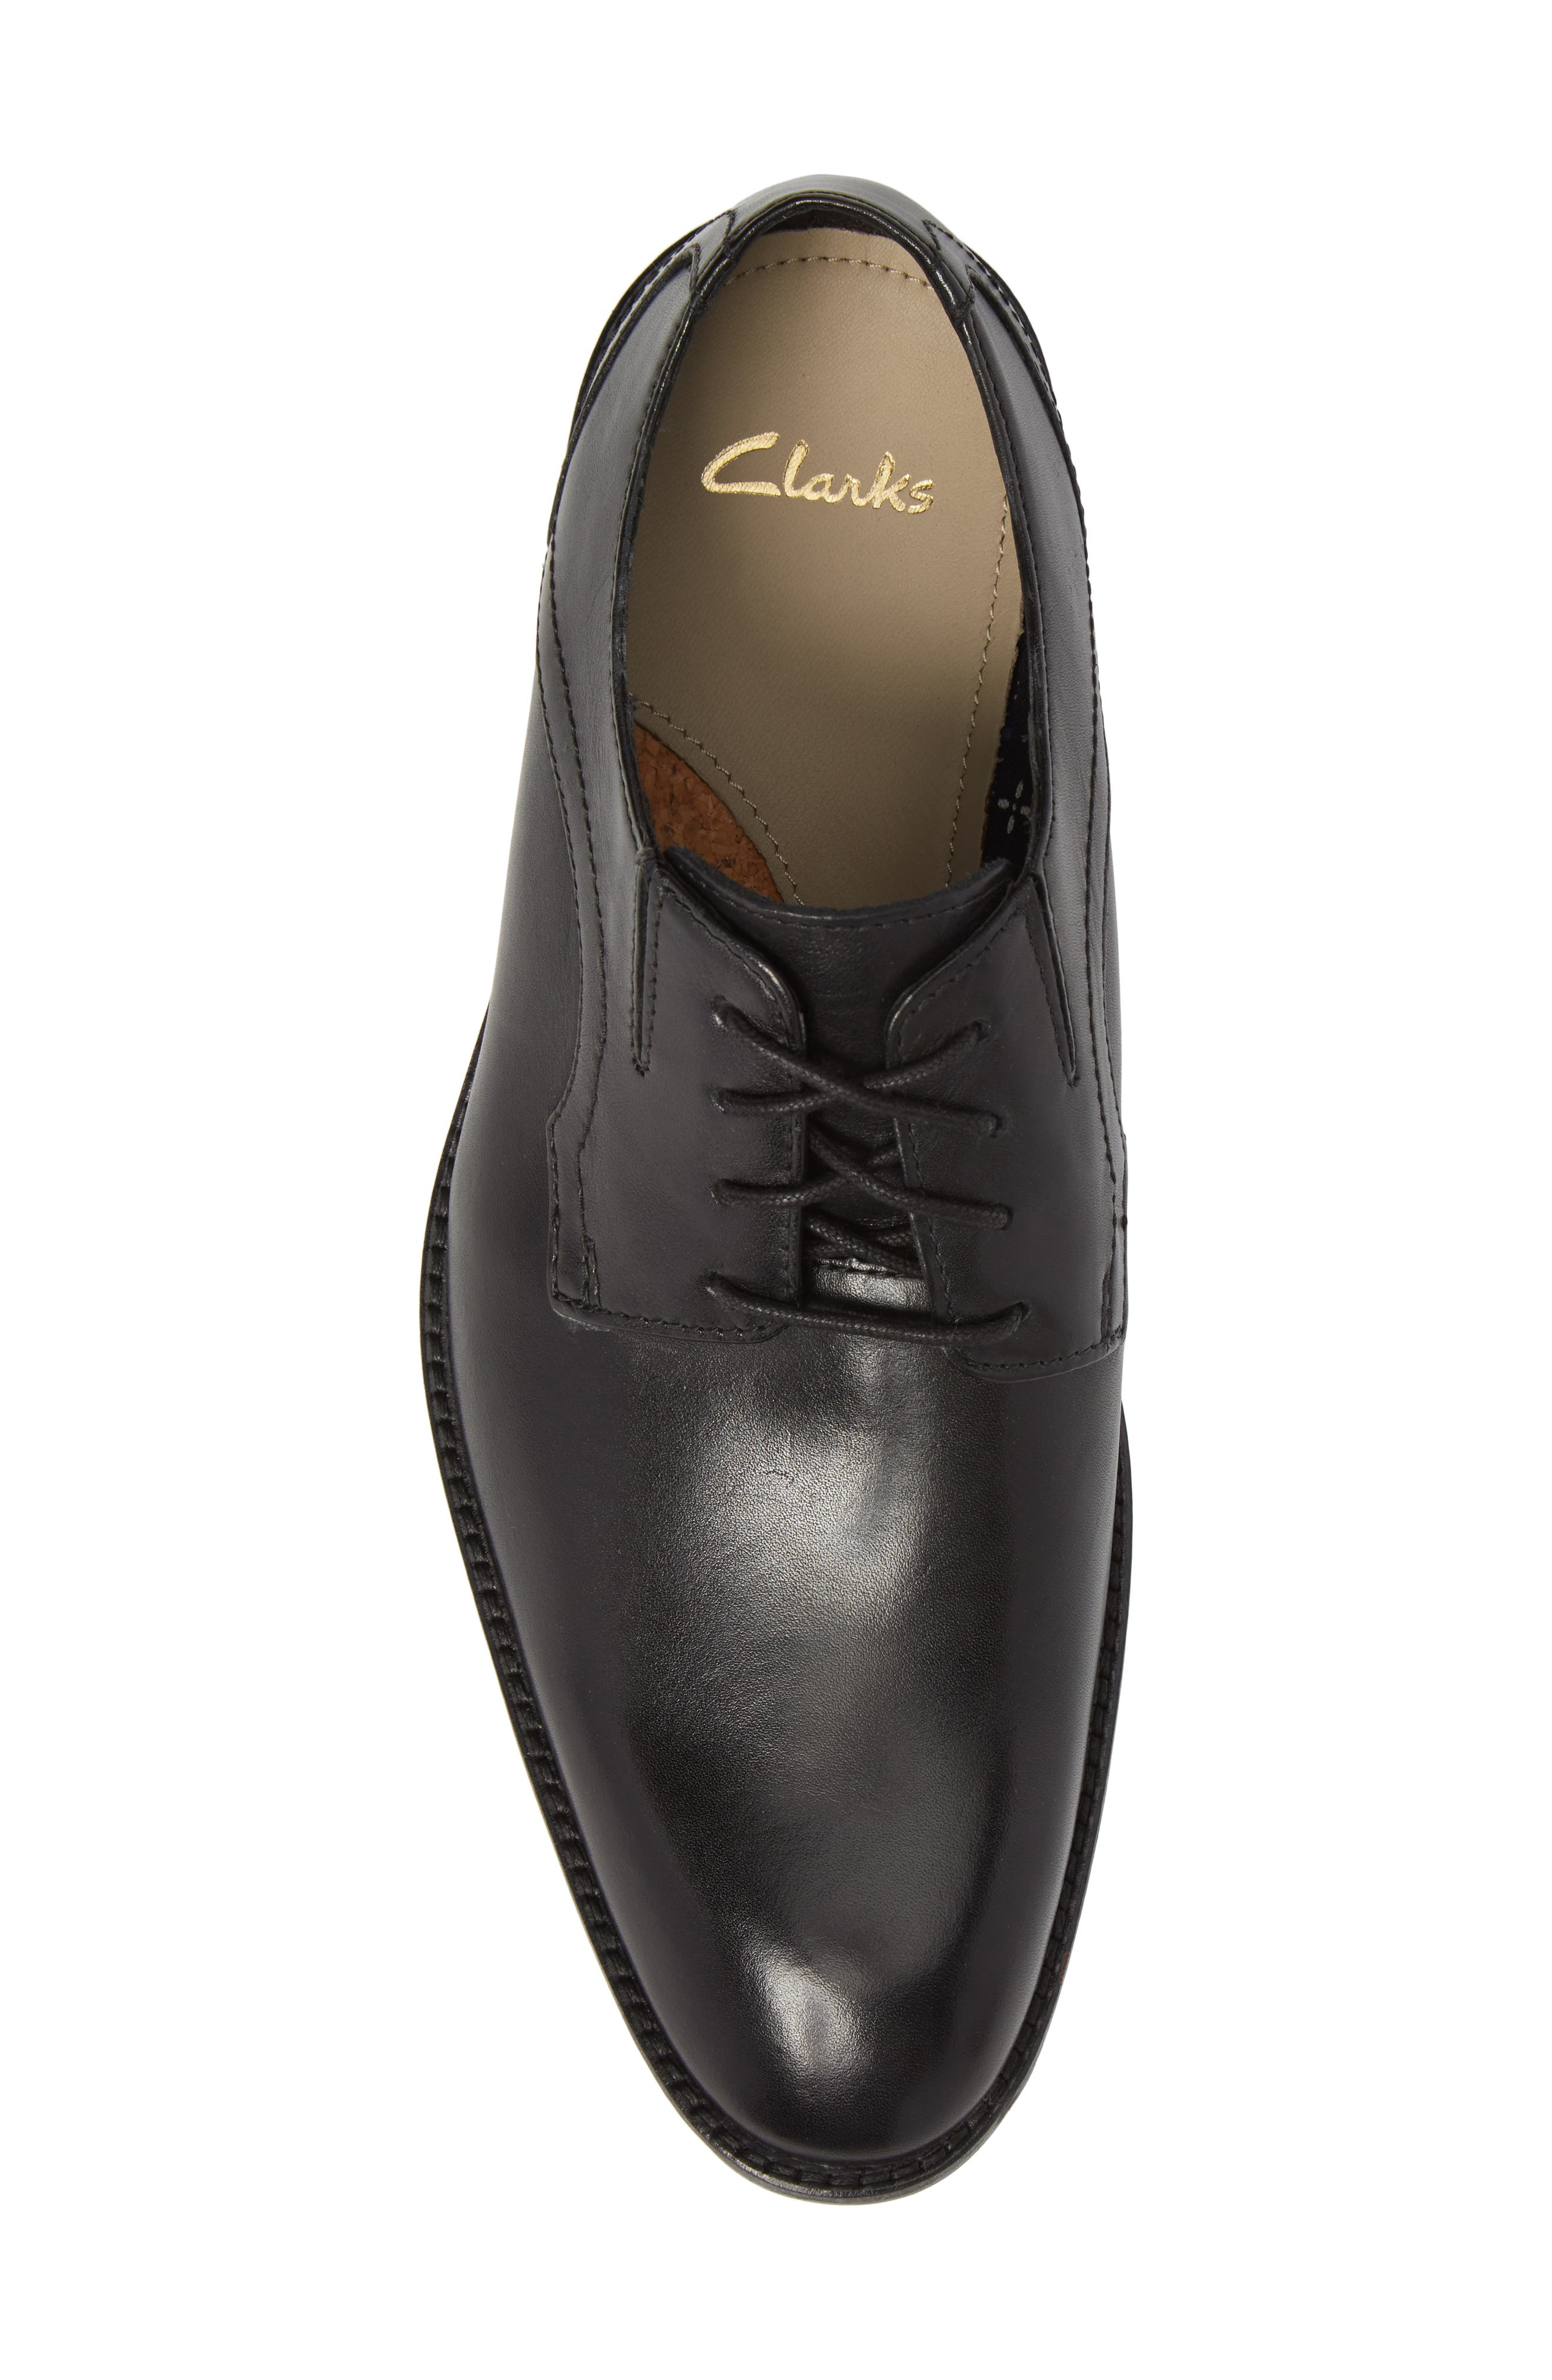 Clarks<sup>®</sup> Prangley Walk Plain Toe Derby,                             Alternate thumbnail 5, color,                             Black Leather